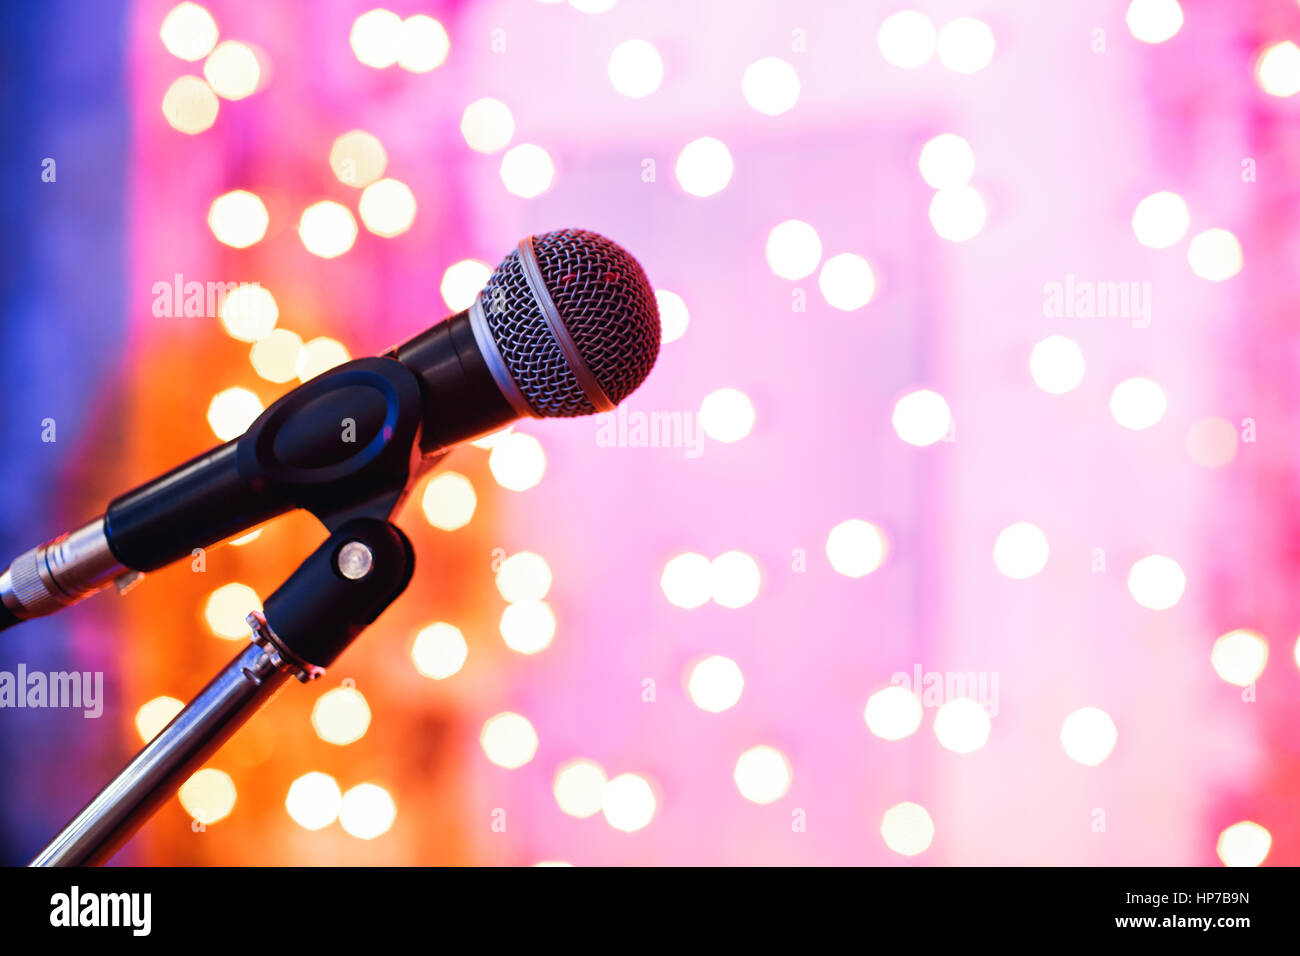 Close up of microphone in concert hall with blurred lights at background - Stock Image